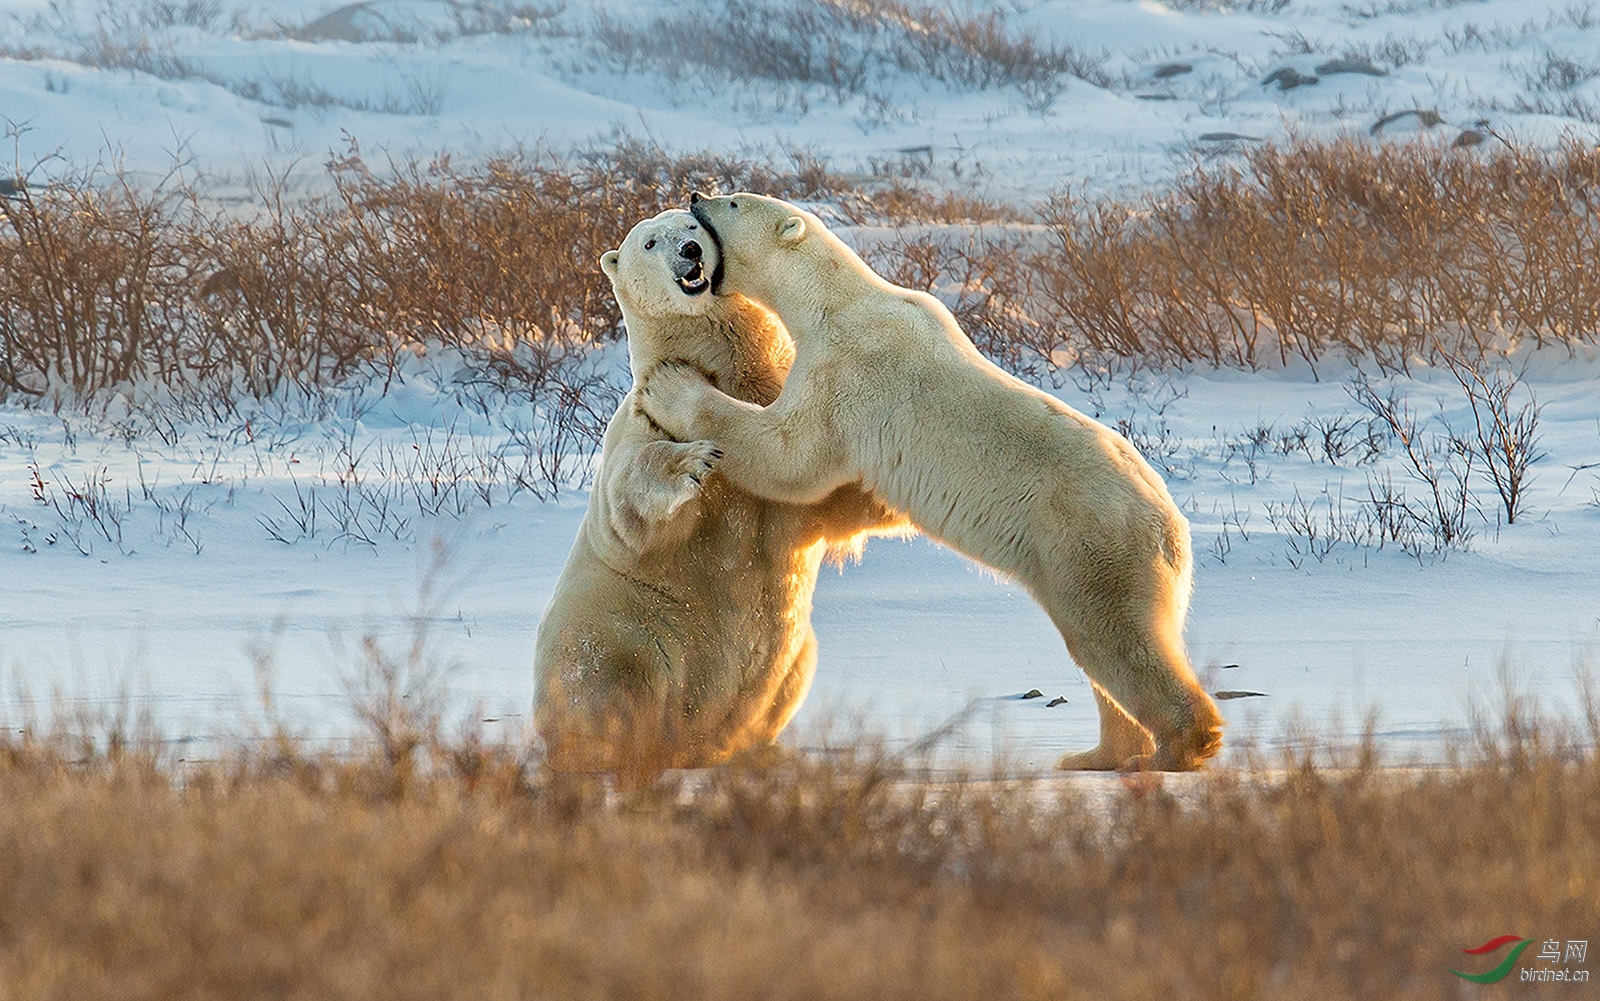 0349.强吻Richard LiPolar bears fight.jpg